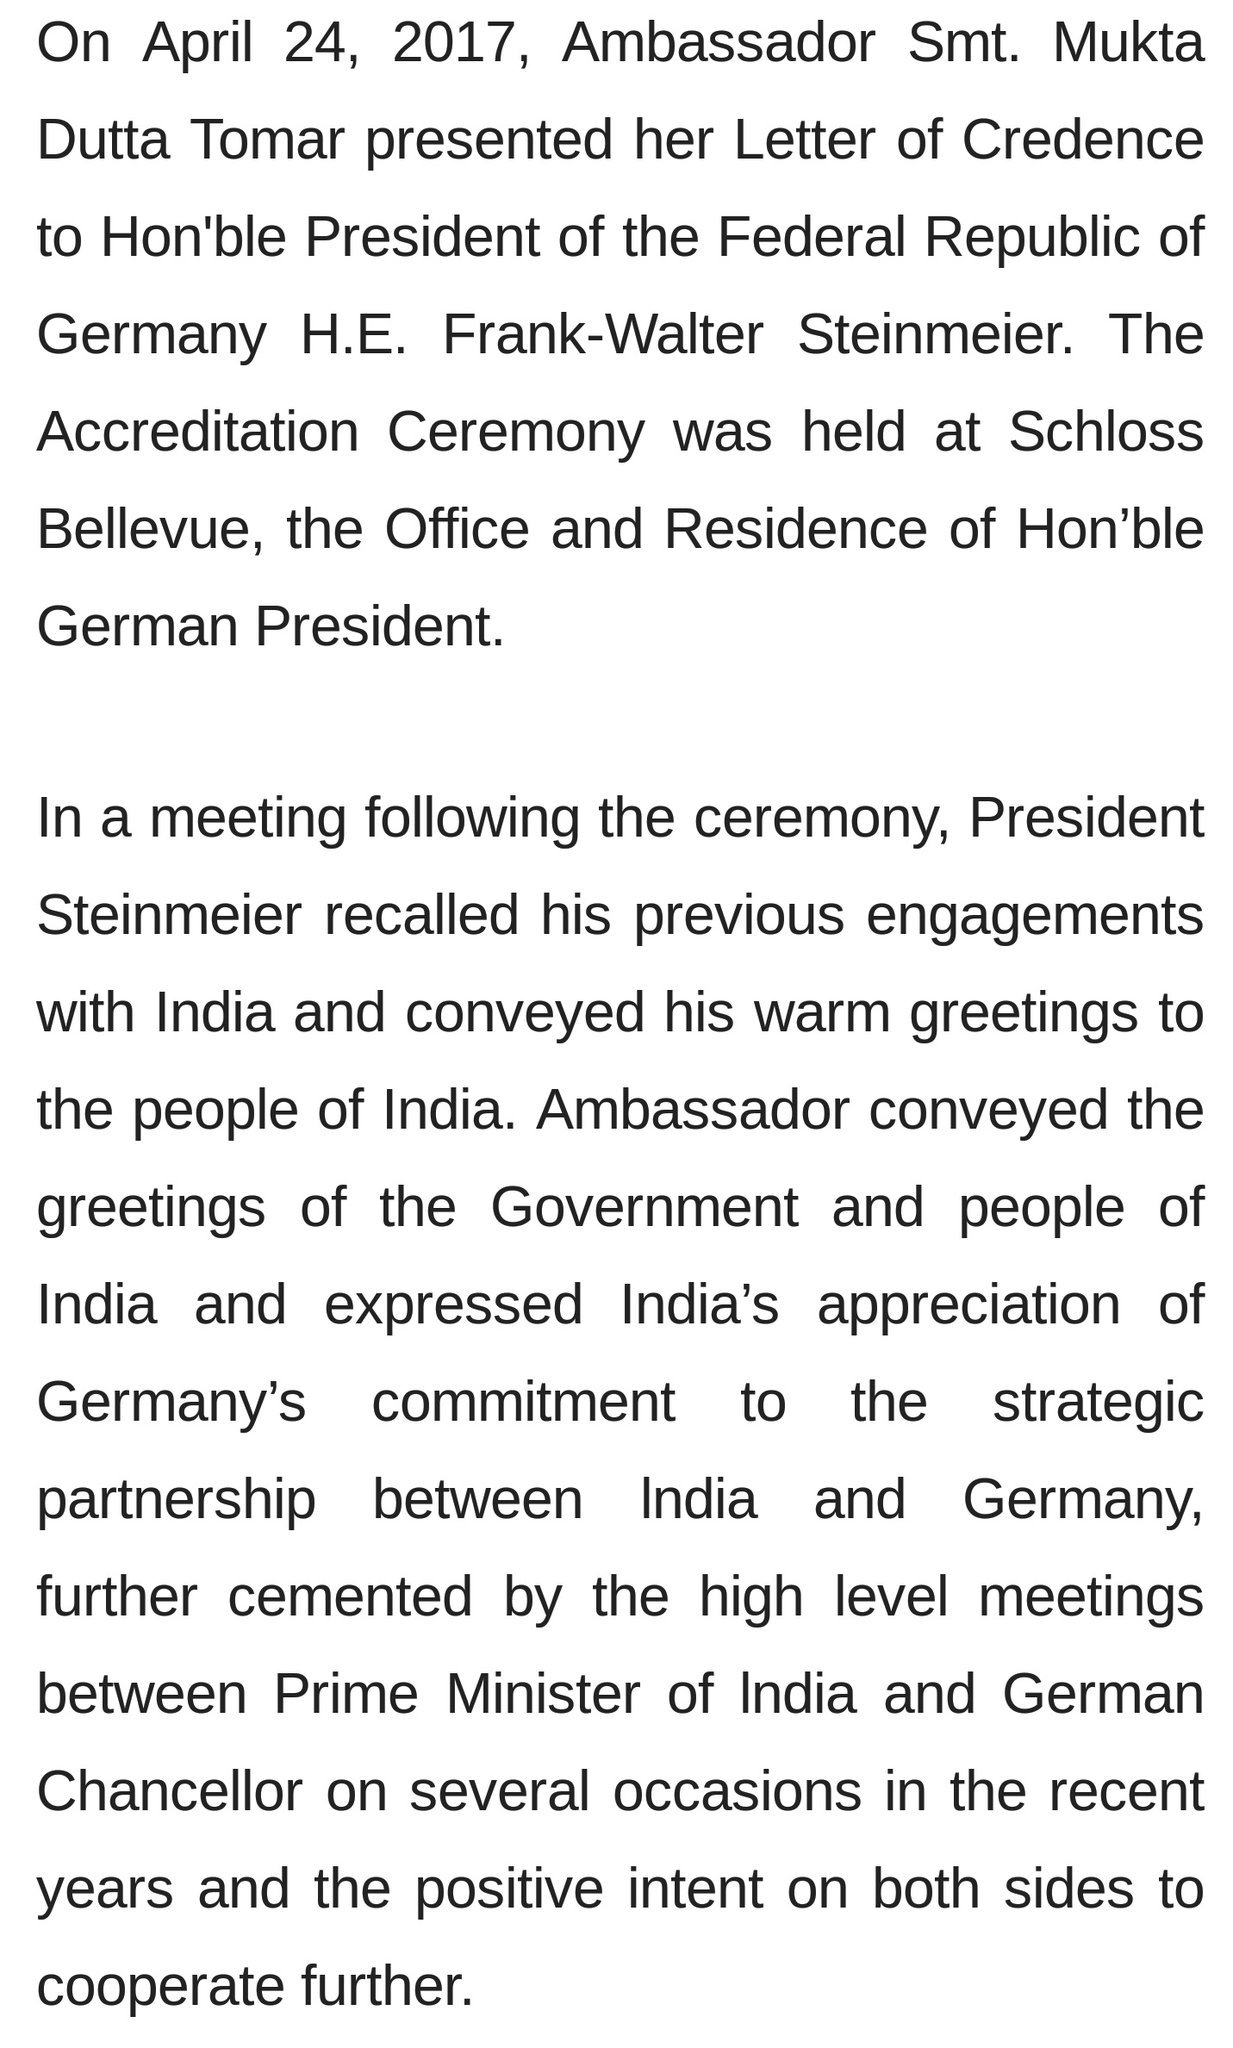 India in germany on twitter ambassador smt mukta dutta tomar india in germany on twitter ambassador smt mukta dutta tomar presented her letter of credence to honble president of the germany he frank walter spiritdancerdesigns Gallery